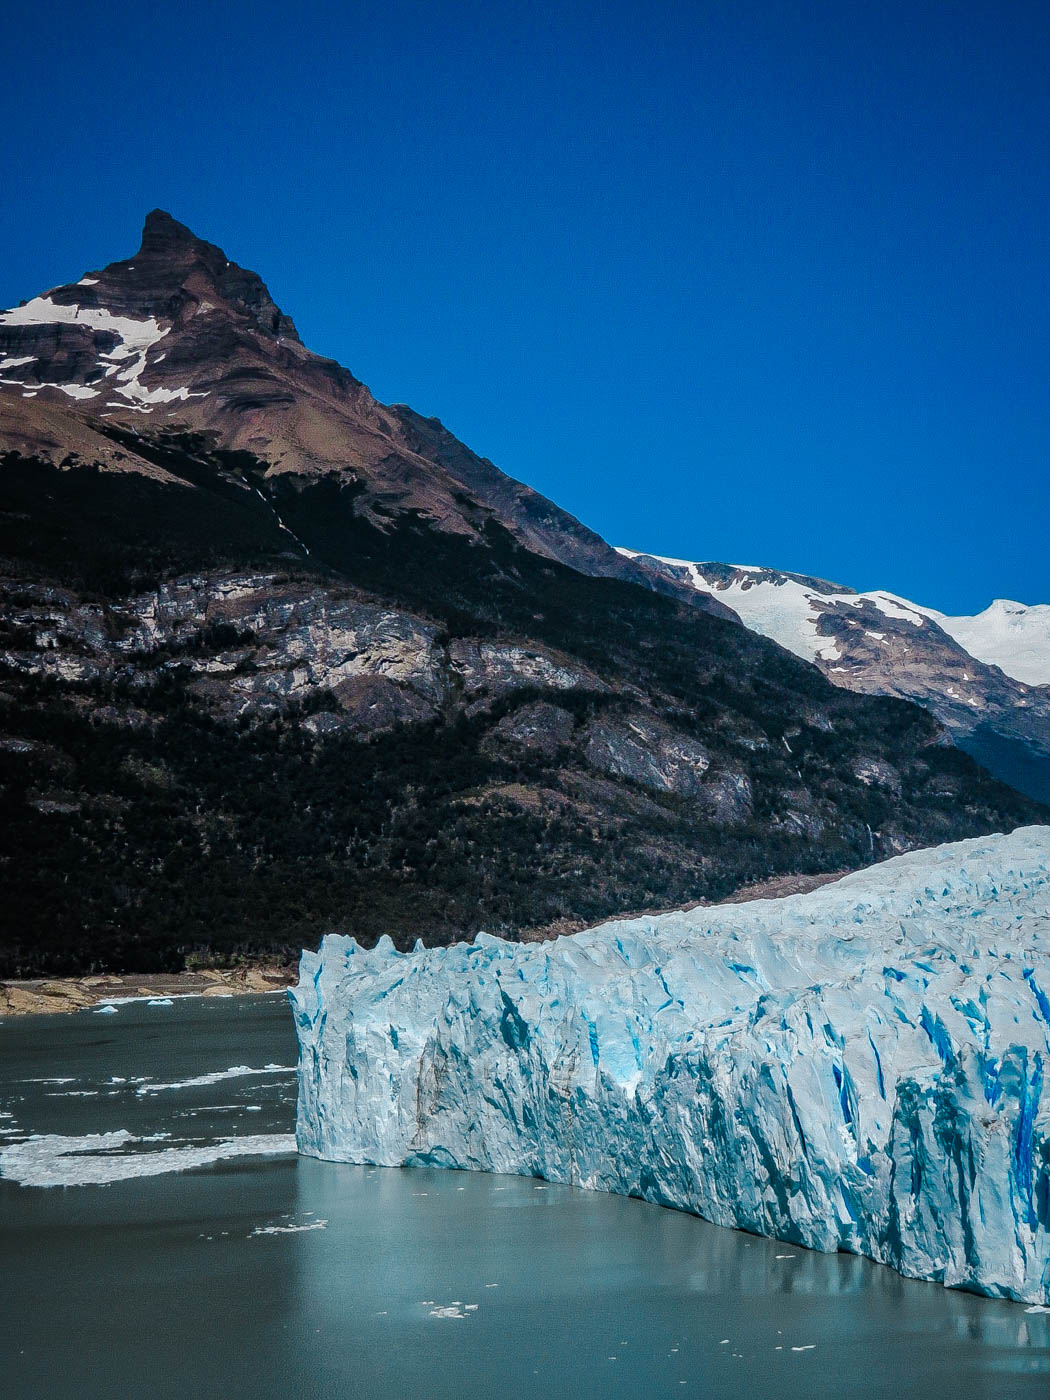 Glacier Perito Moreno I South America Travel Bucket List. 90 Awesome Things to do in South America When Backpacking and Travelling #southamerica #bucketlist #traveldestinations